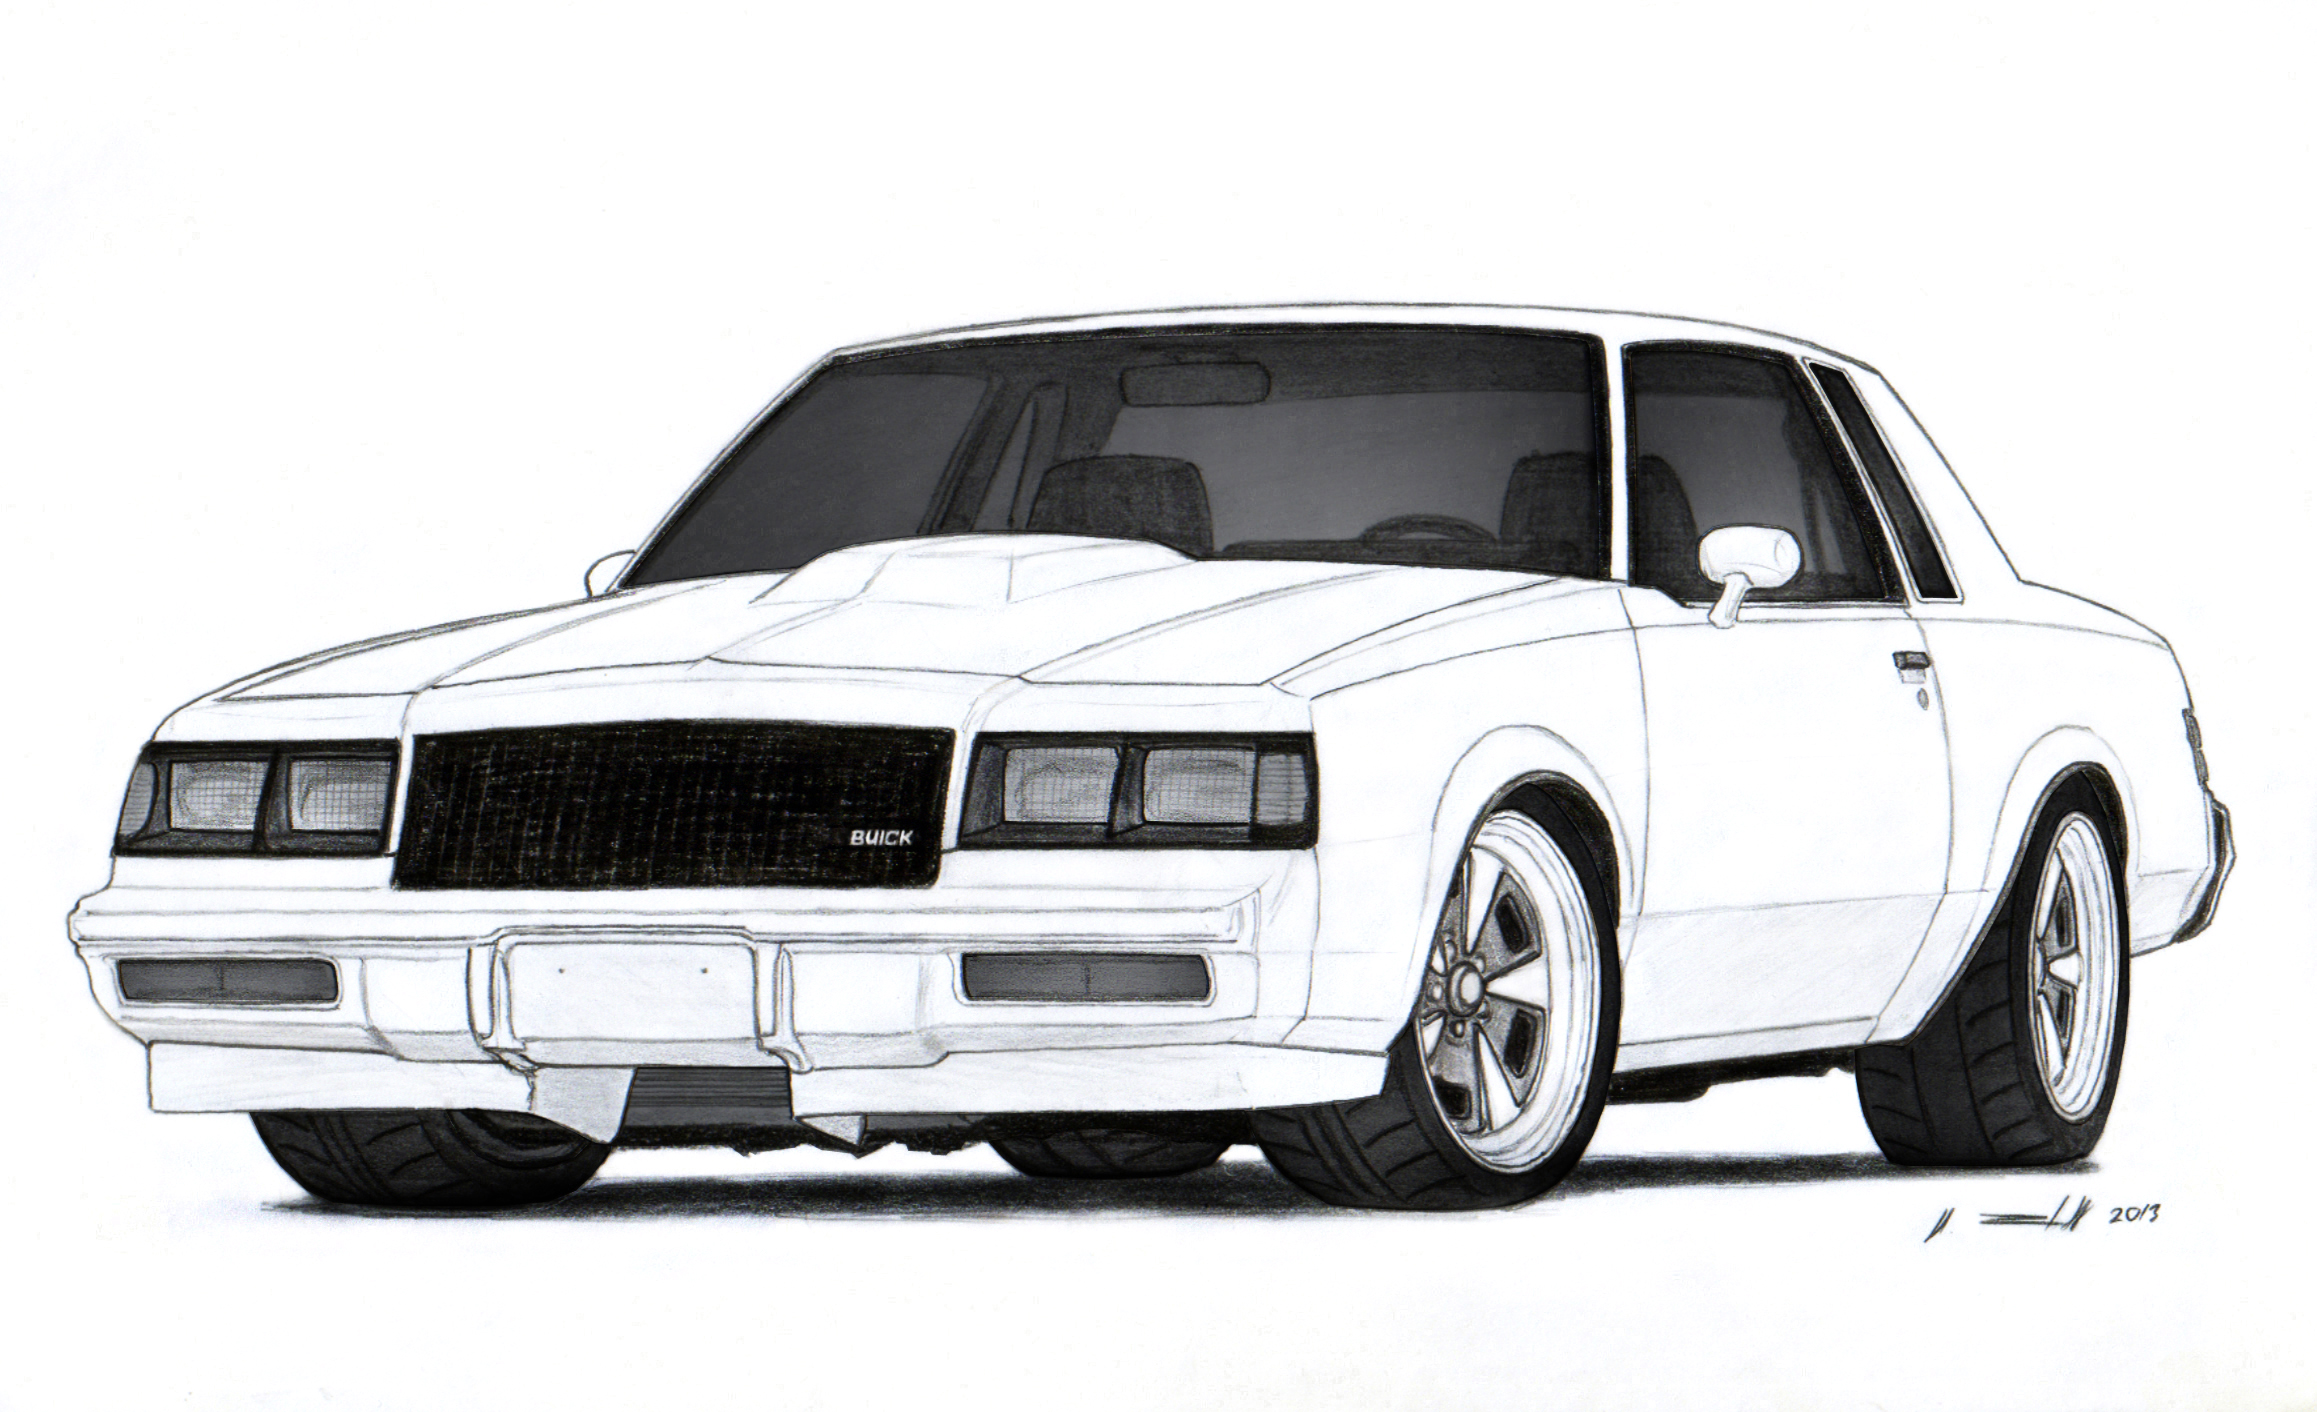 191222270664 further 223001 as well Auxiliary Cooler Line Position together with 1986 Buick Grand National Drawing 354236681 furthermore T 388275. on th200 transmission